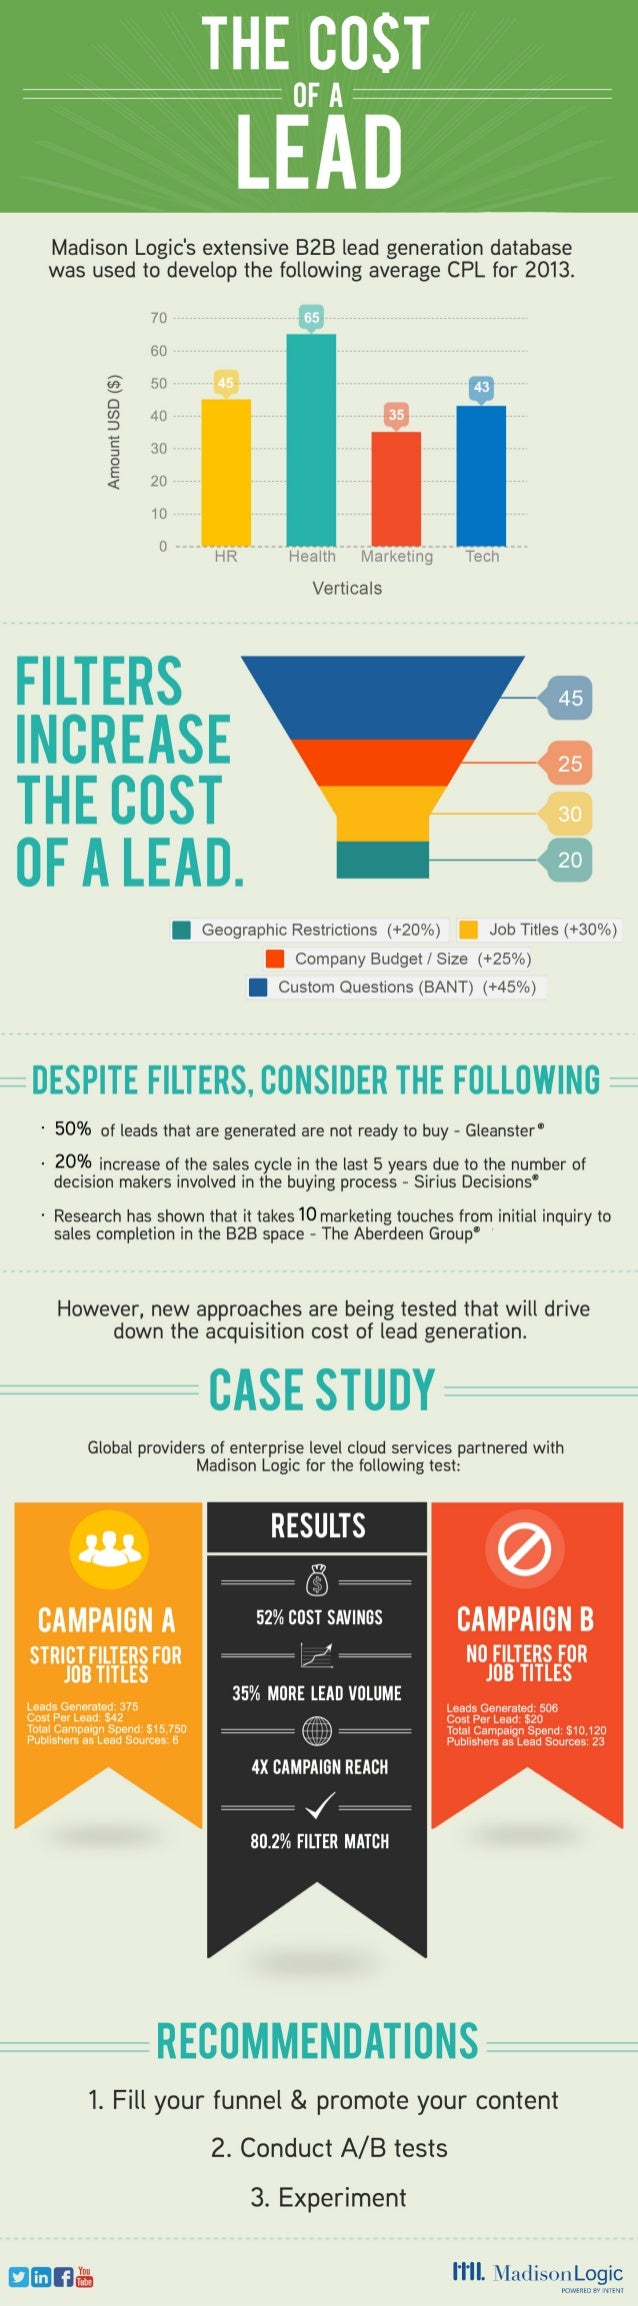 Infographic: The Cost of a Lead